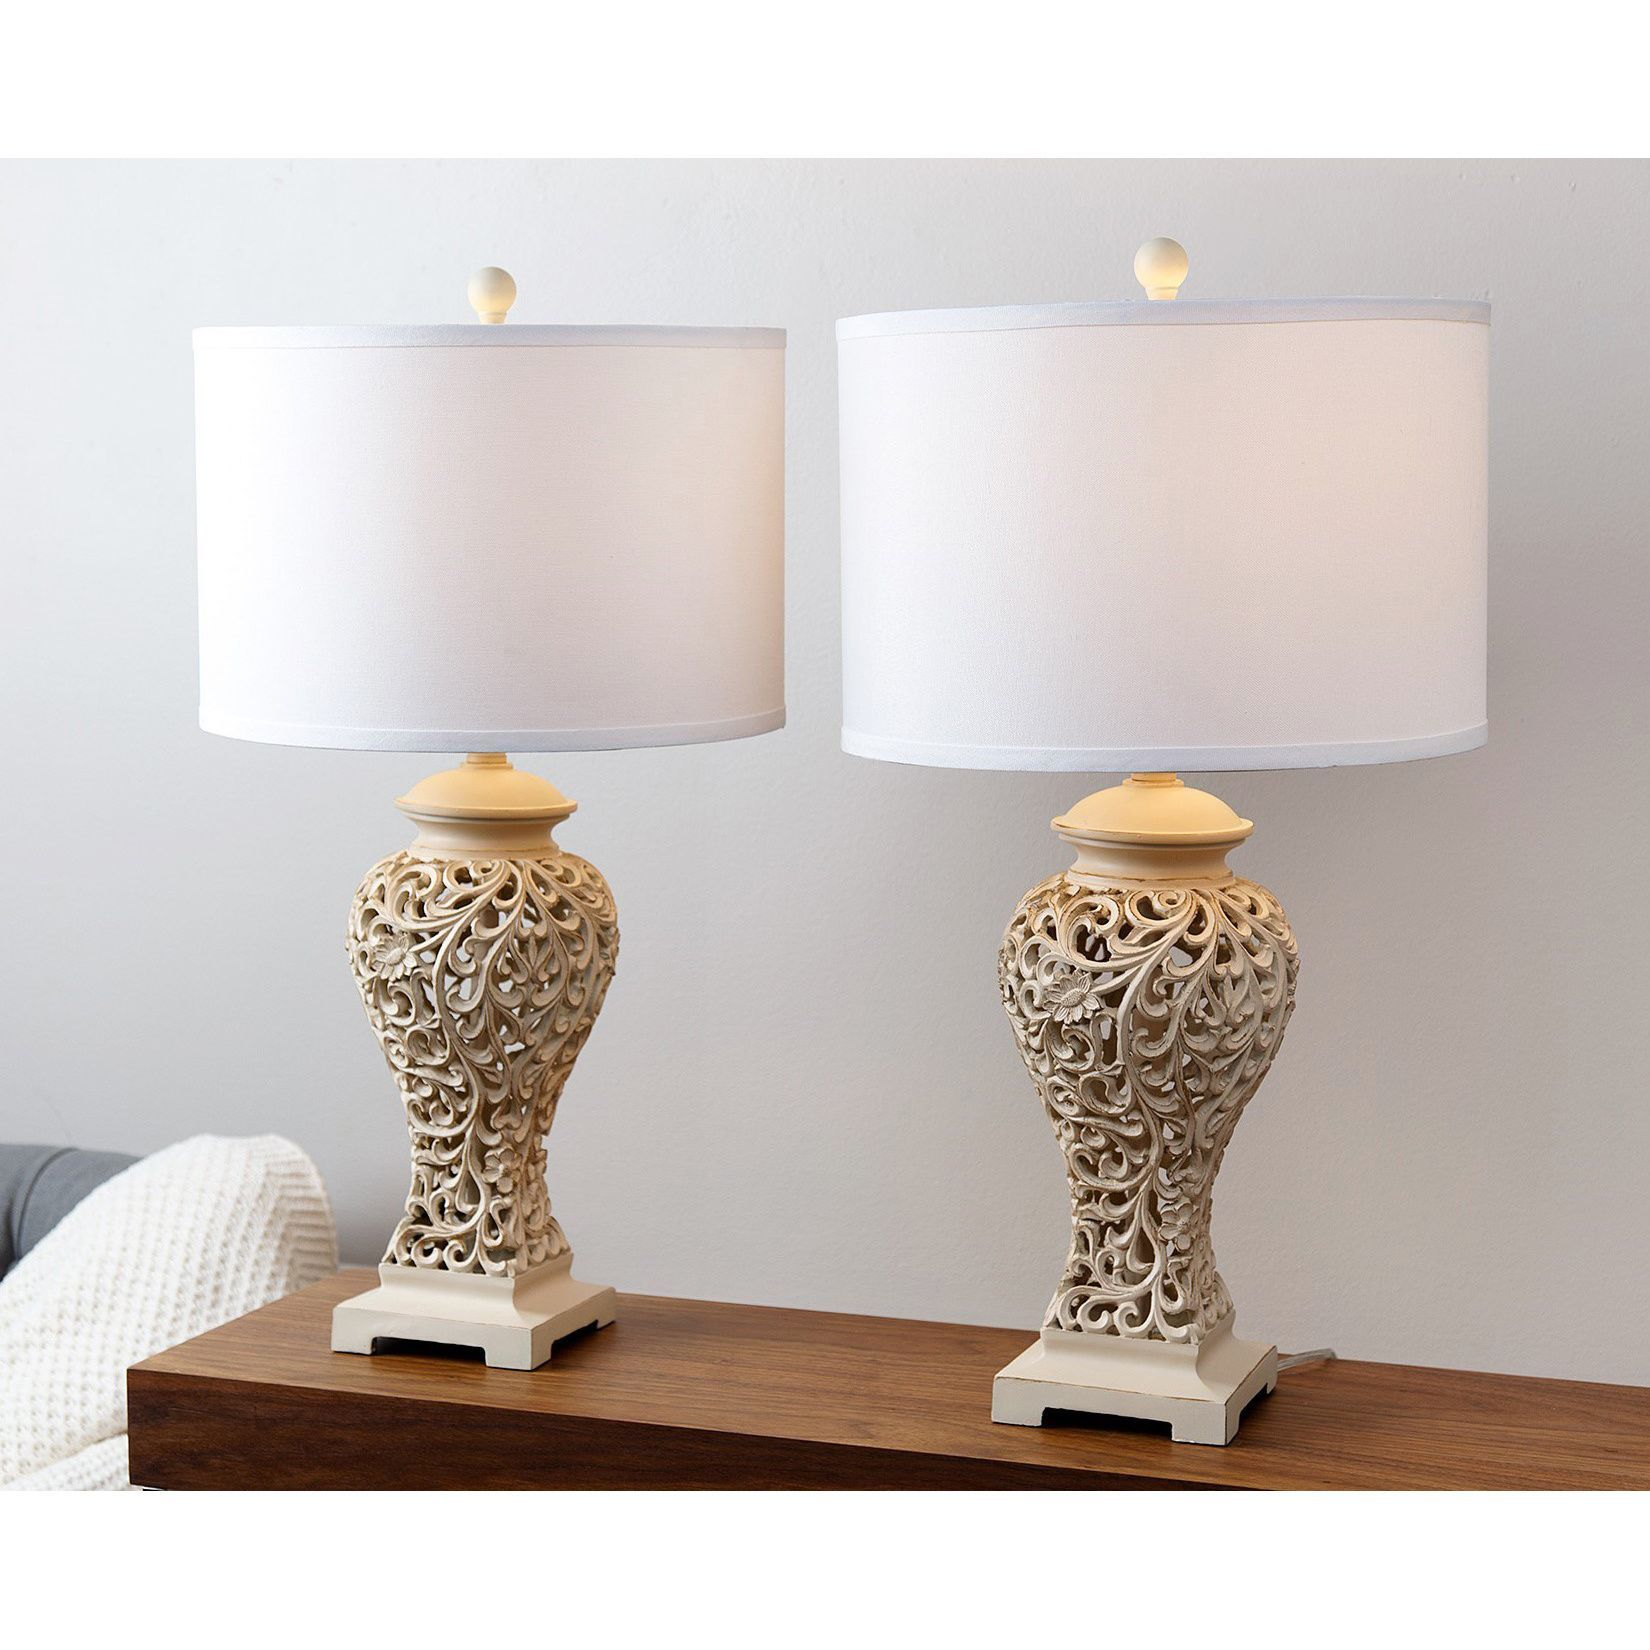 Abbyson fleur de lis table lamp set of 2 by abbyson tyxgb76aj abbyson fleur de lis table lamp set of 2 by abbyson mozeypictures Gallery